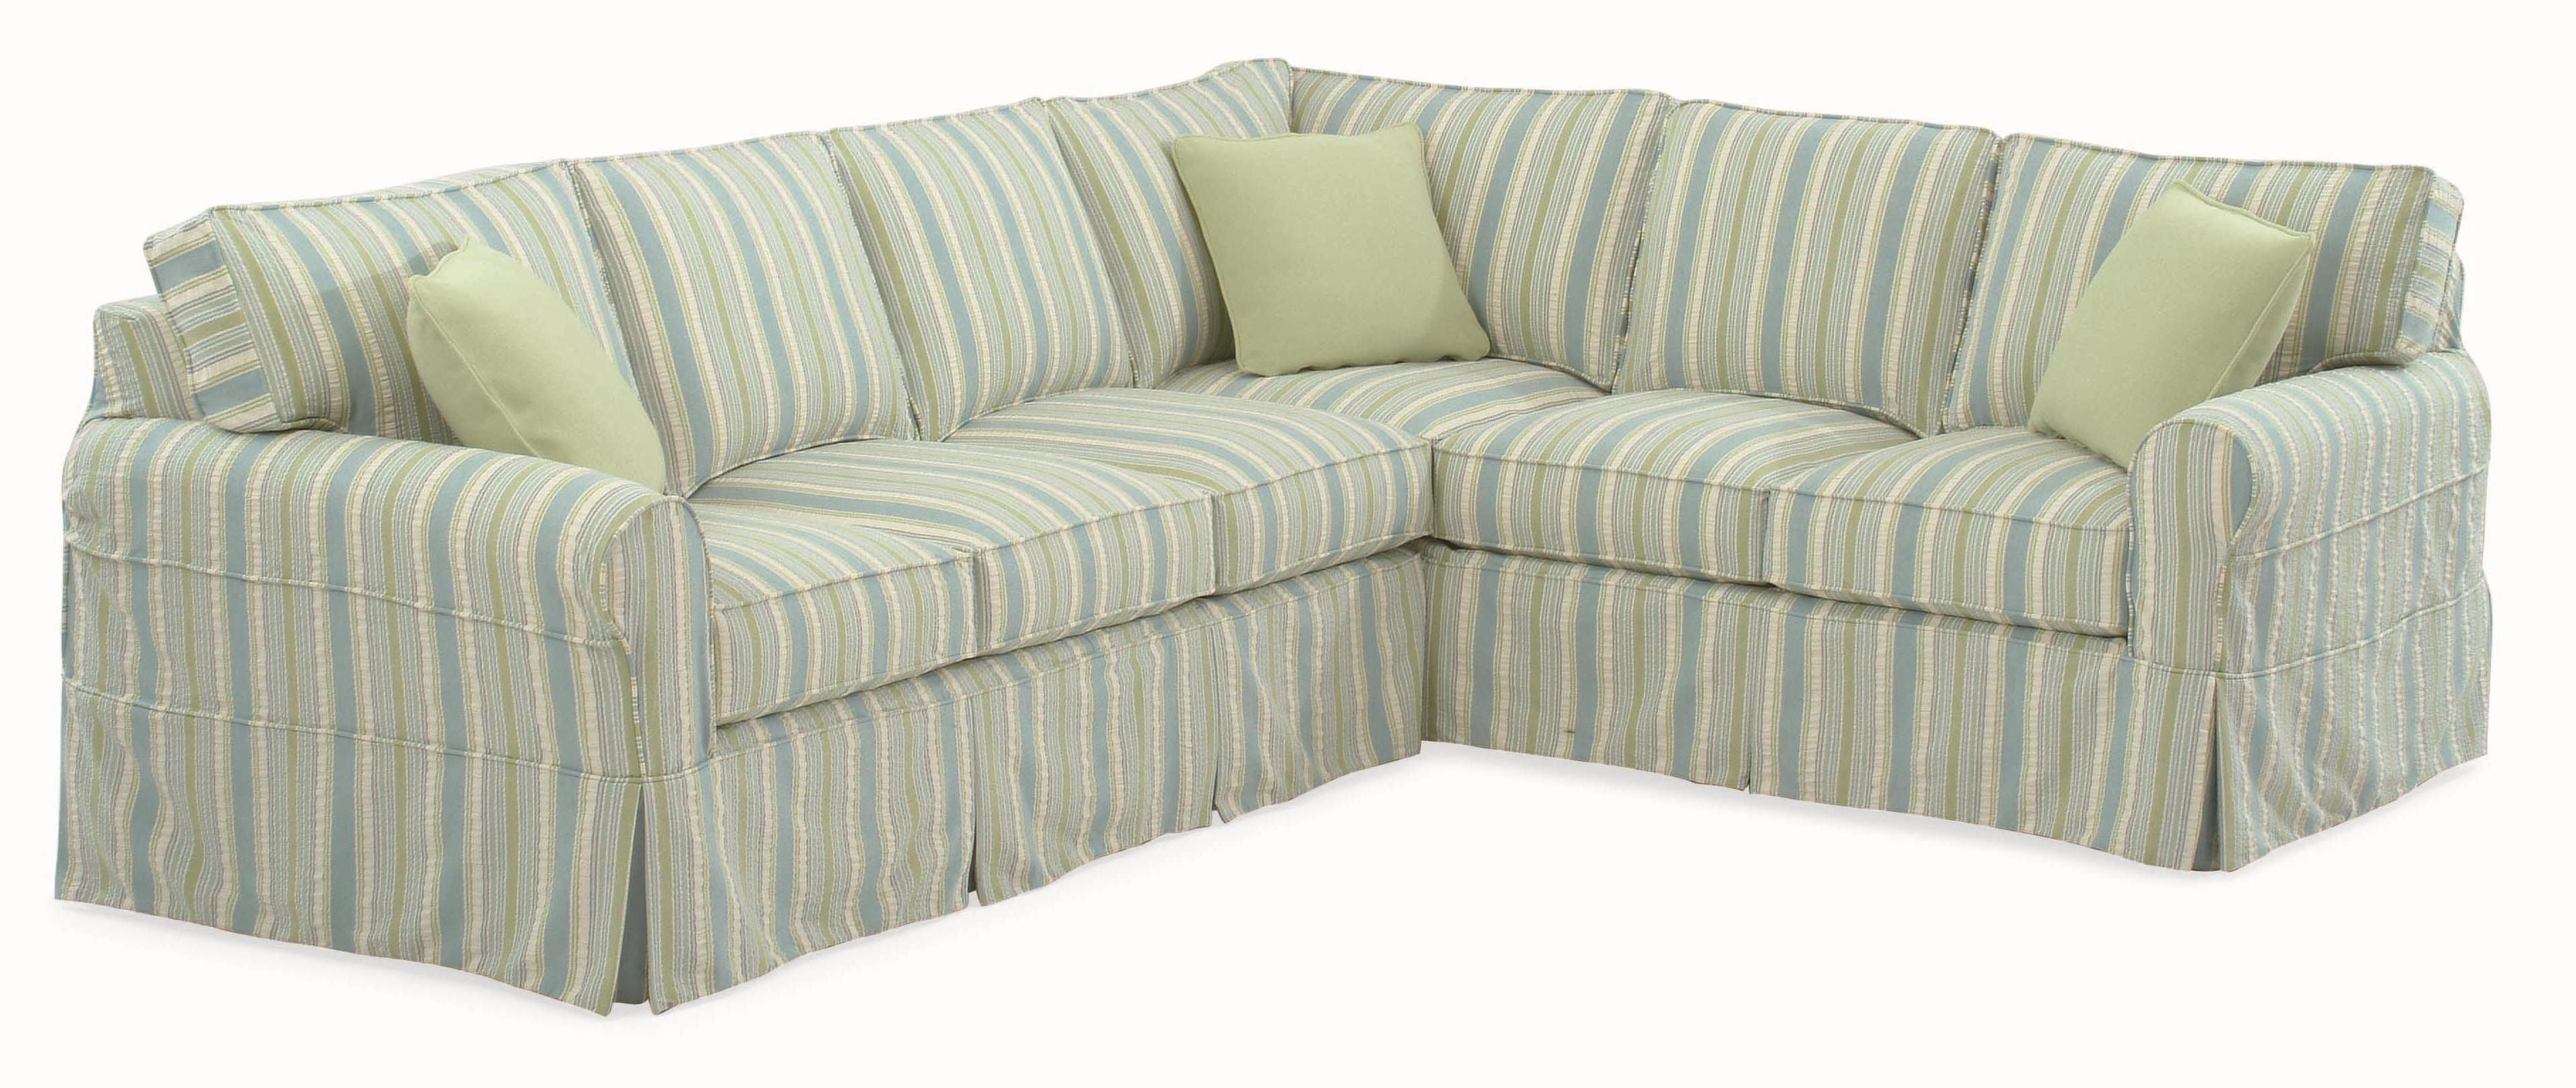 Best And Newest Slipcovers For Sectionals With Chaise For Braxton Culler 728 Casual Sectional Sofa With Rolled Arms And (View 10 of 15)